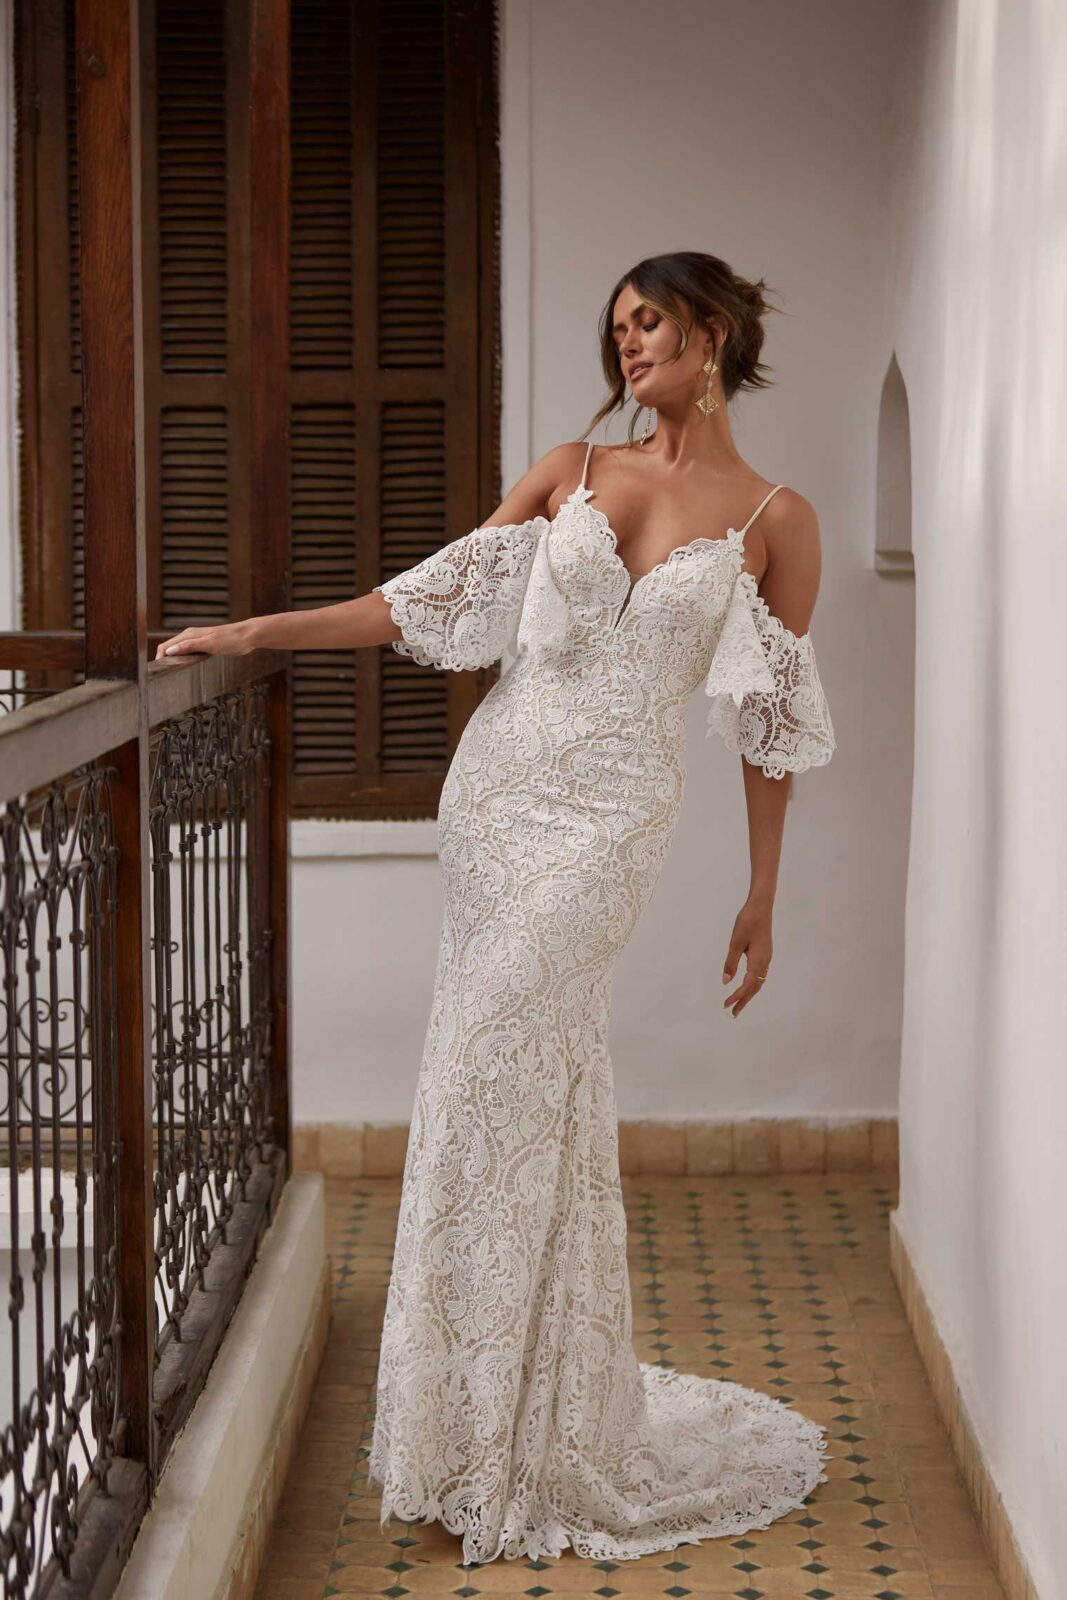 ARWEN-ML17488-FULL-LACE-FITTED-GOWN-WITH-SPAGHETTI-STRAPS-AND-DETACHABLE-OFF-SHOULDER-FLUTTER-SLEEVES-WEDDING-DRESS-MADI-LANE-BRIDAL2